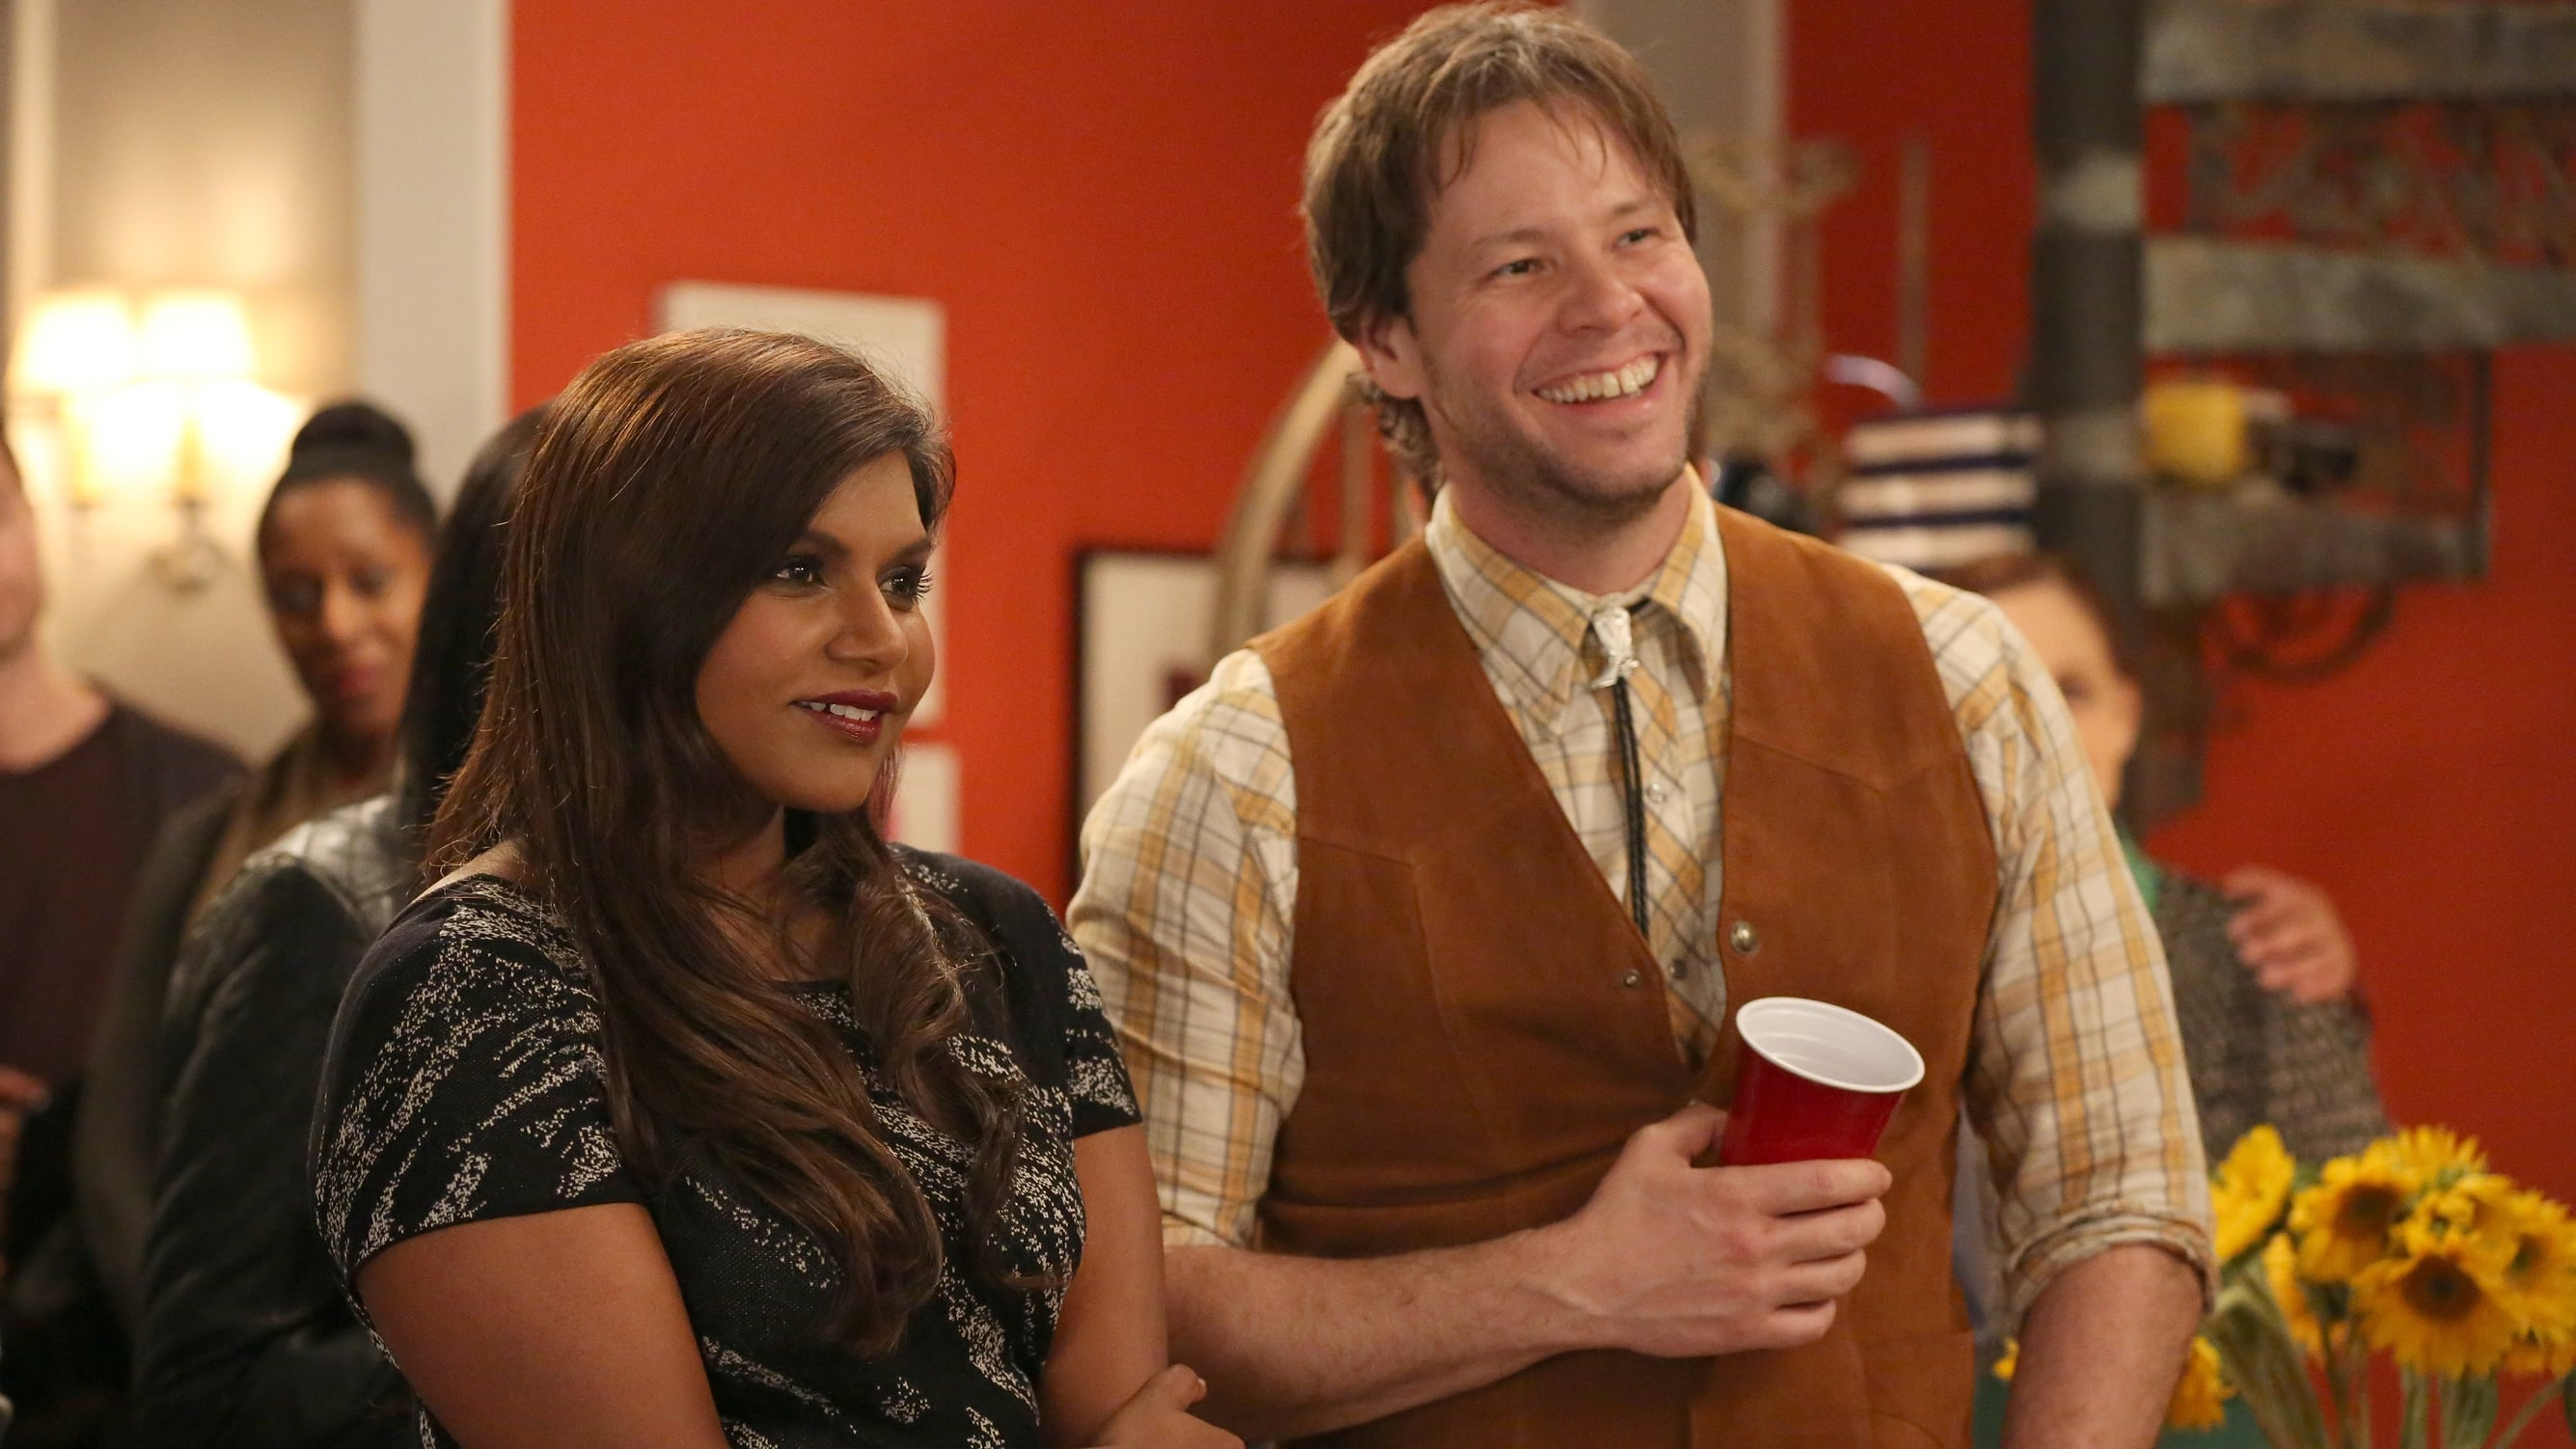 mindy project full episode Episodes the mindy project is a tv series starring mindy kaling, ike barinholtz, and ed weeks a young ob/gyn doctor balances her personal and professional life, surrounded by quirky co-workers in a small office.